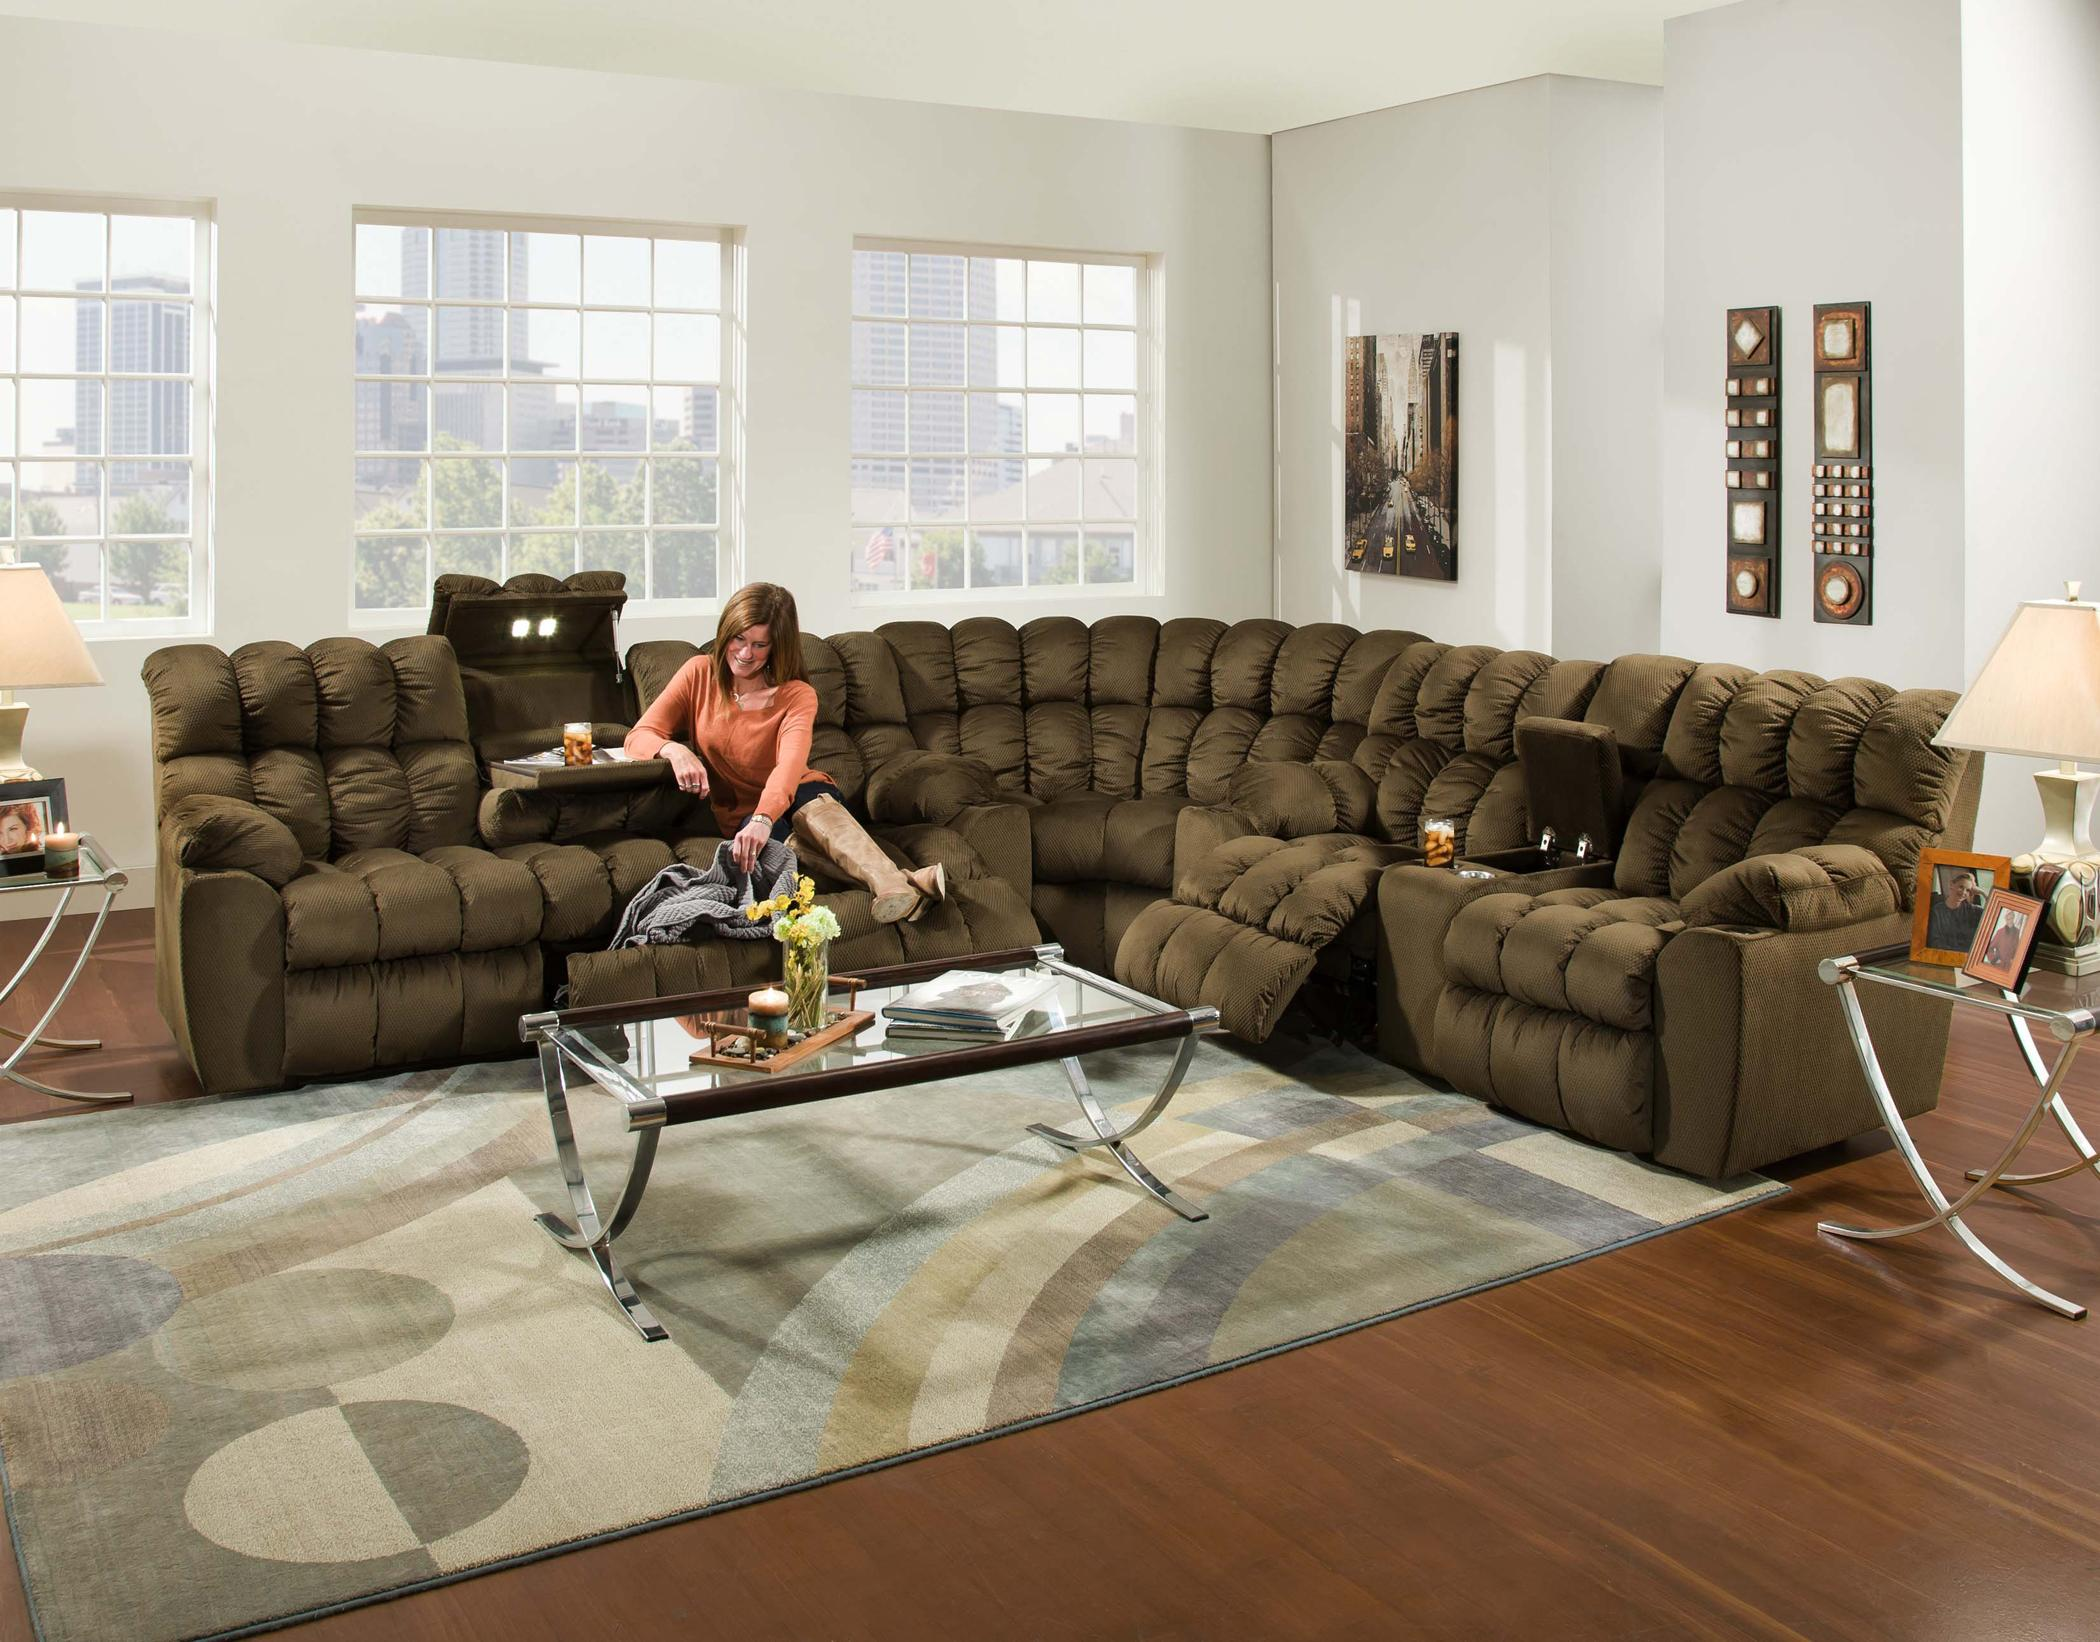 Brayden Reclining Sectional Sofa by Franklin at Lagniappe Home Store